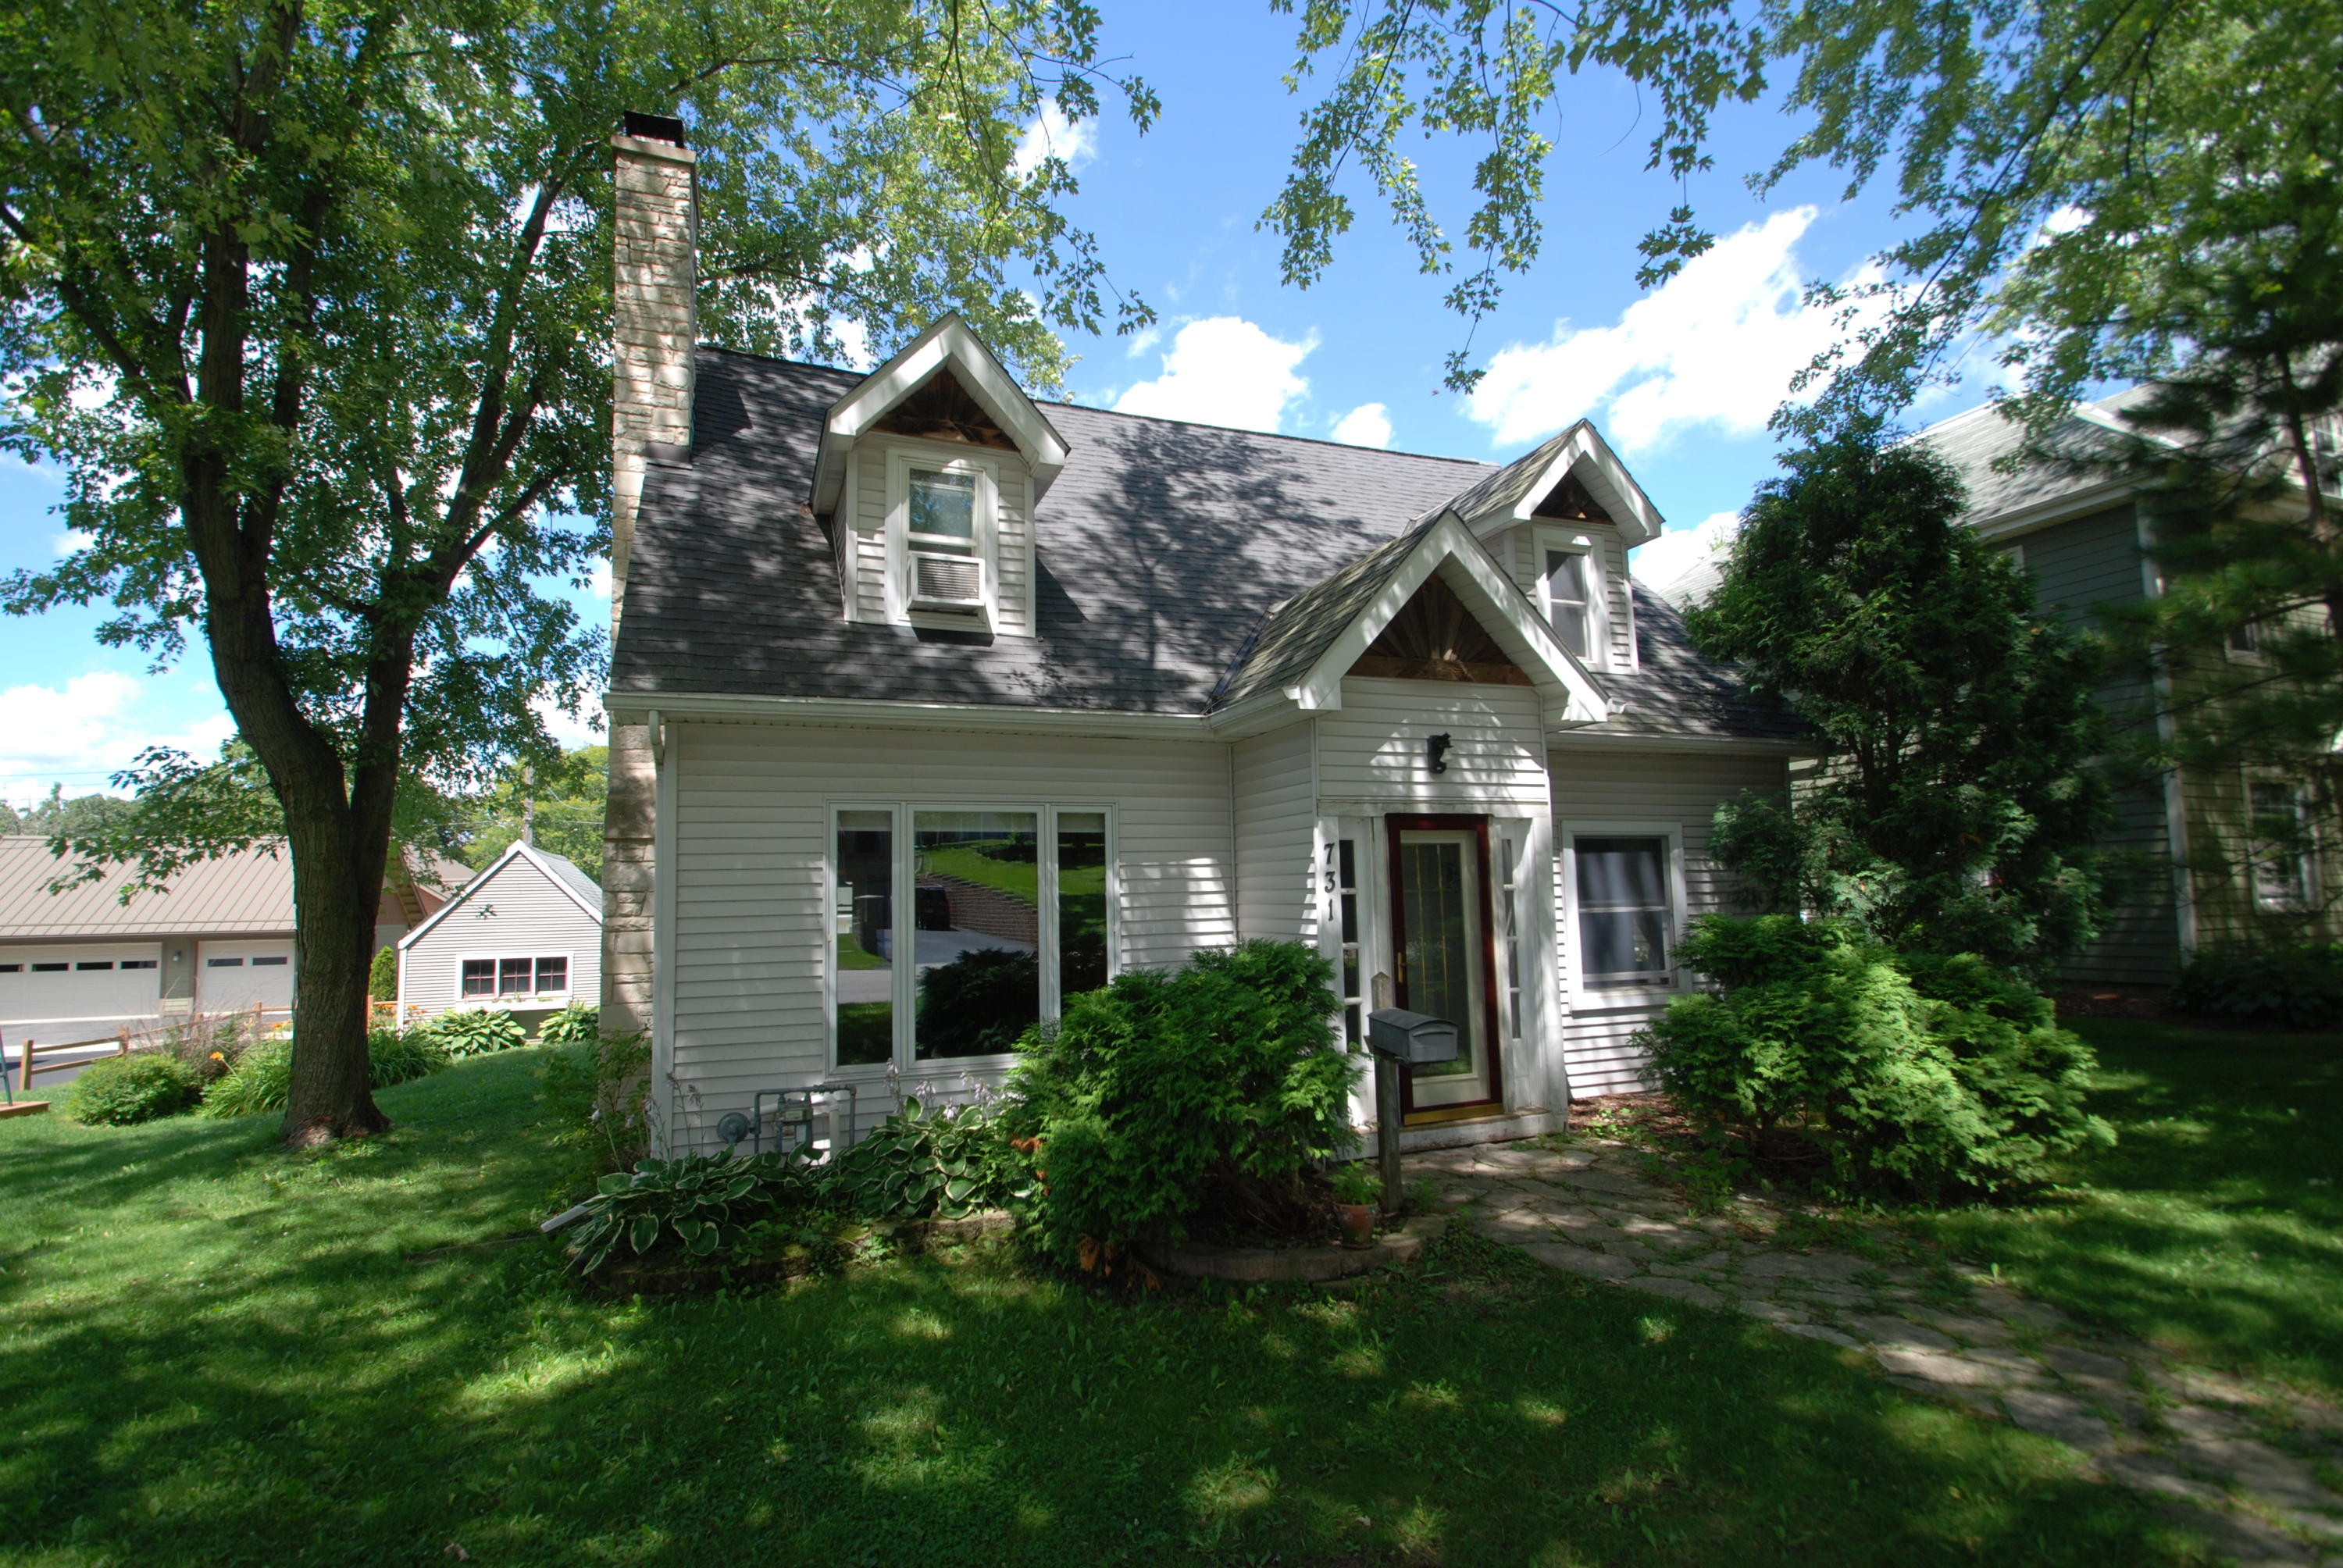 731 Main St, Delafield, Wisconsin 53018, 4 Bedrooms Bedrooms, 6 Rooms Rooms,1 BathroomBathrooms,Single-Family,For Sale,Main St,1702428